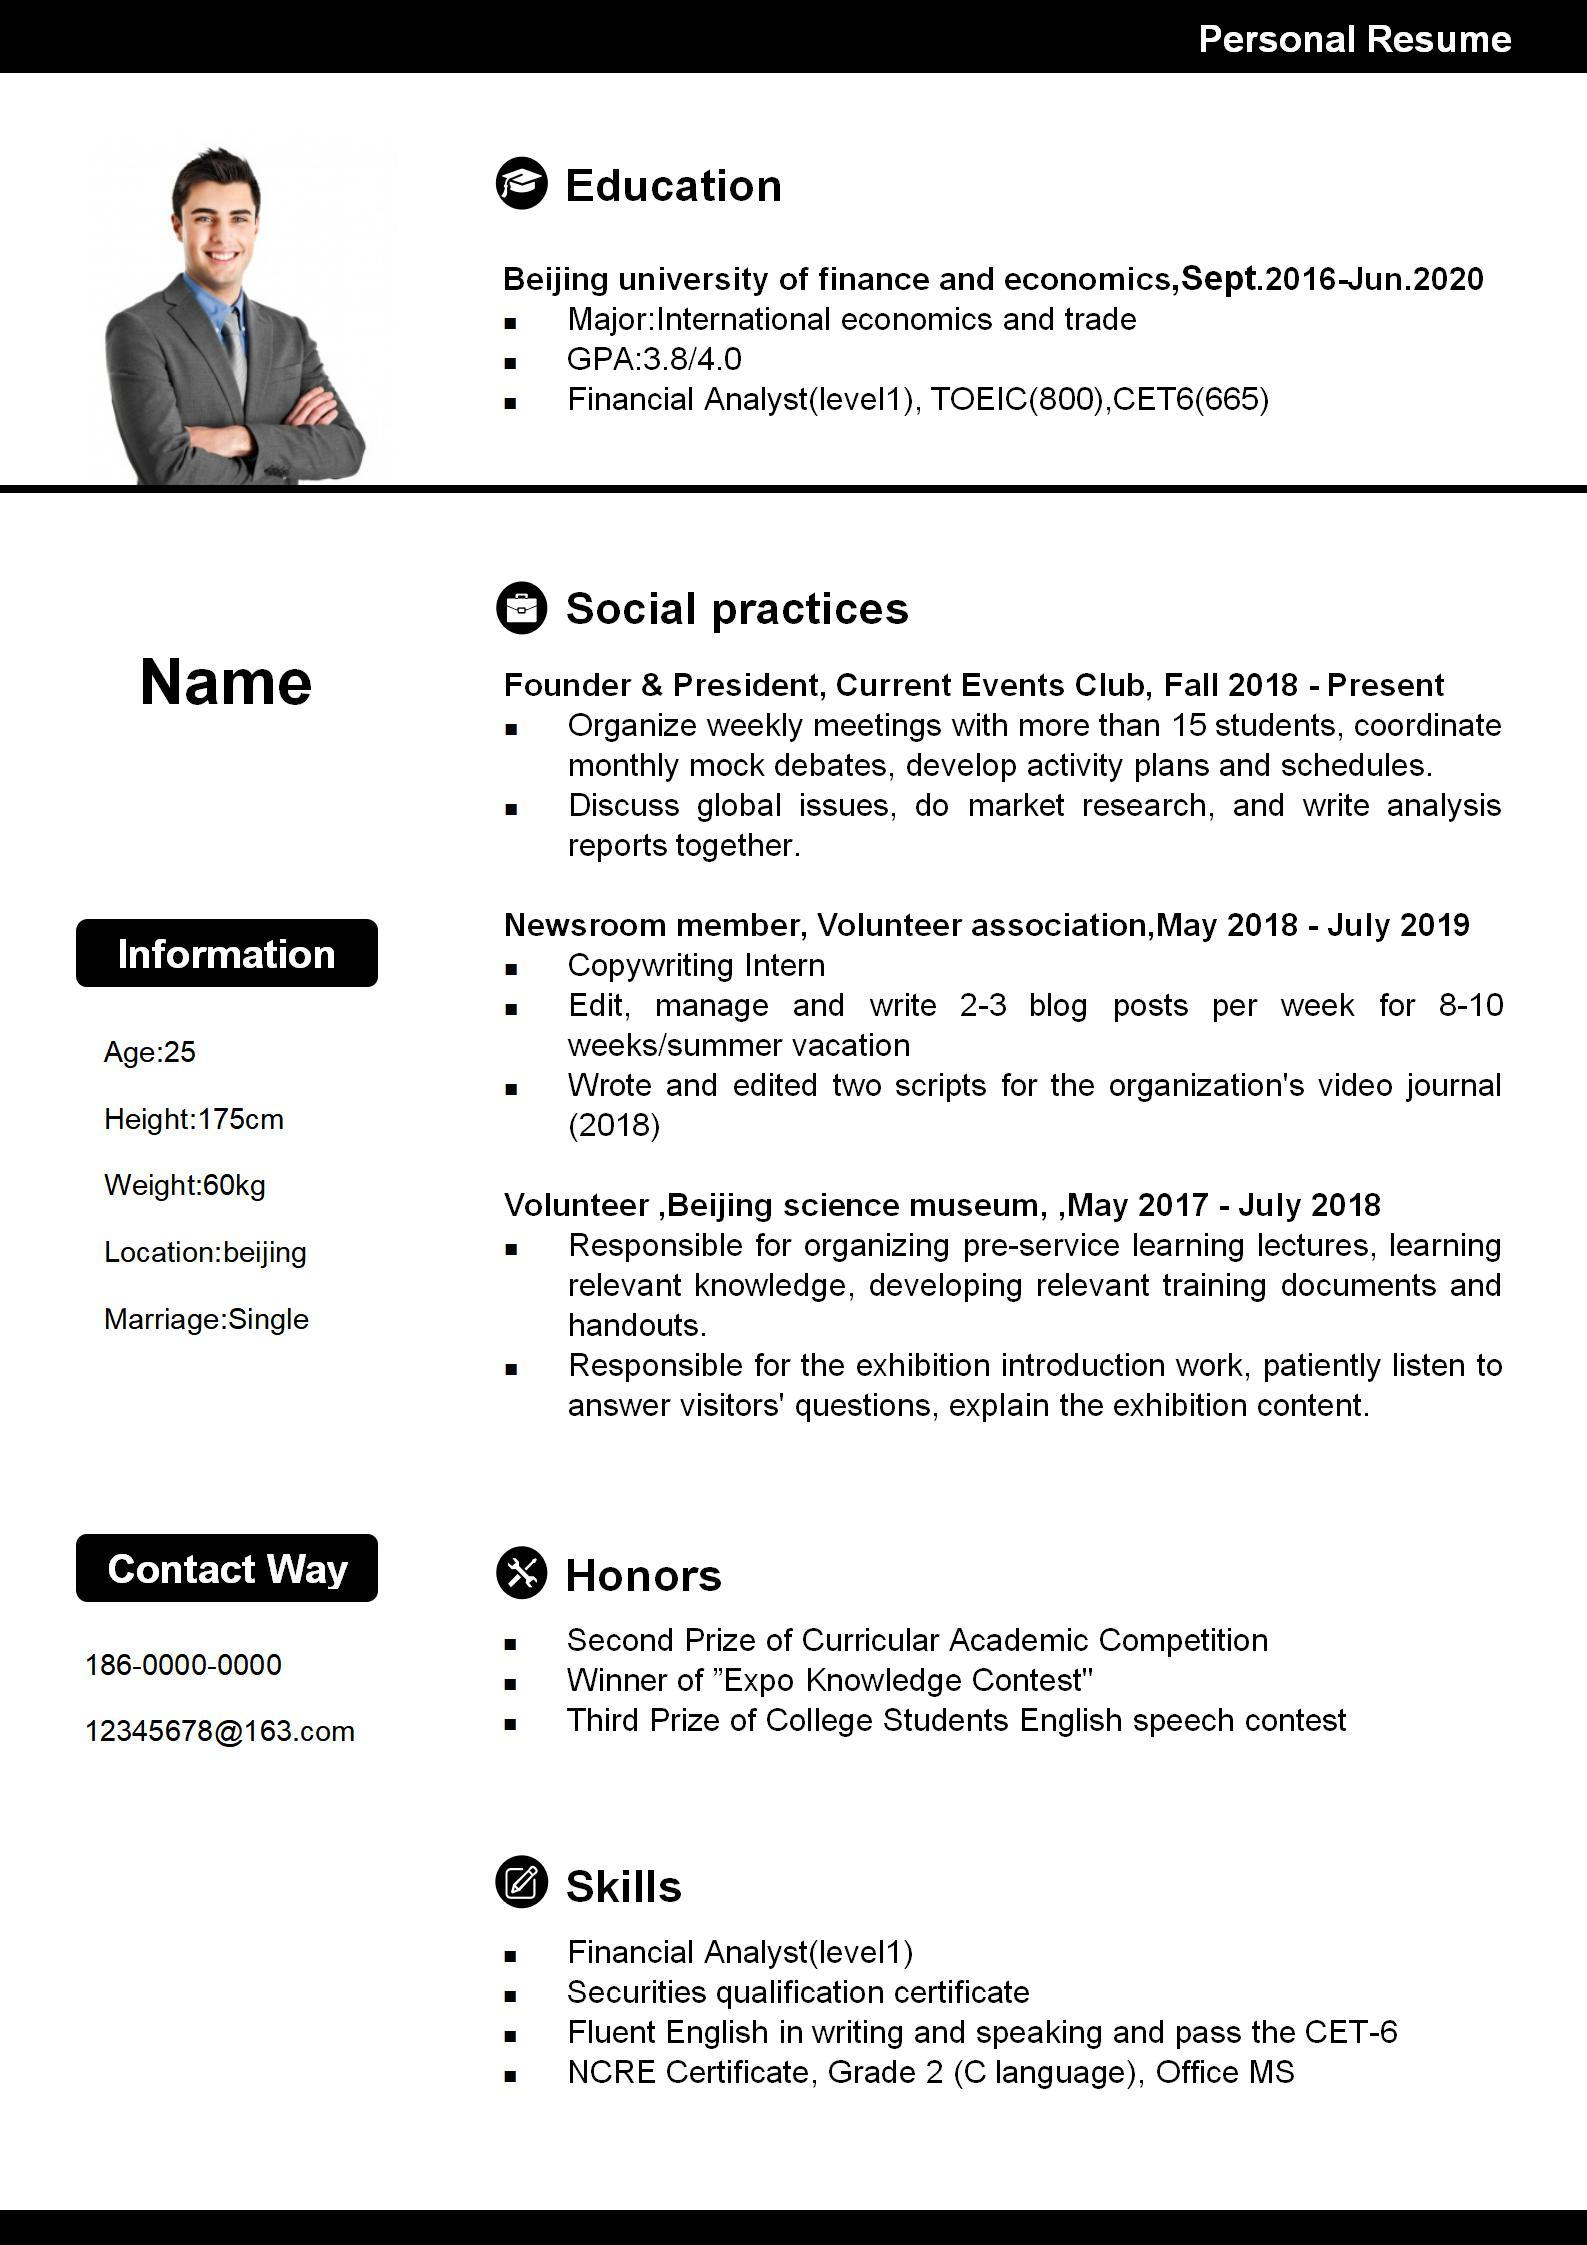 studybroad on resume example sample including objective reddit to put laspoderosasteatro Resume Resume Study Abroad Example